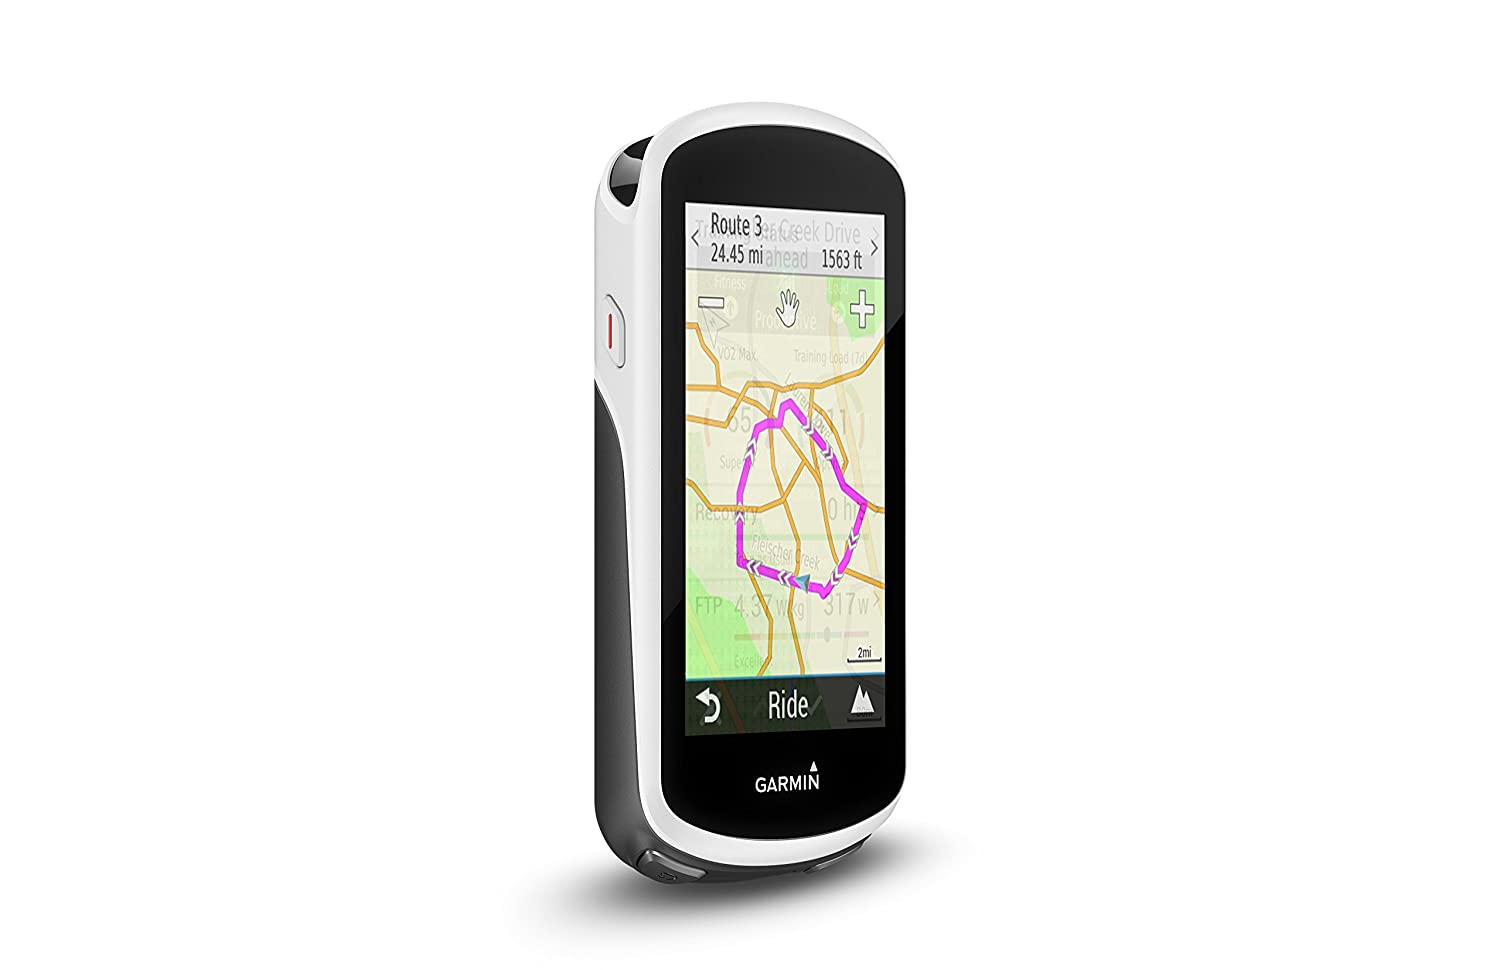 Garmin Edge 1030 3.5 GPS Cycling//Bike Computer with Navigation and Connected Features